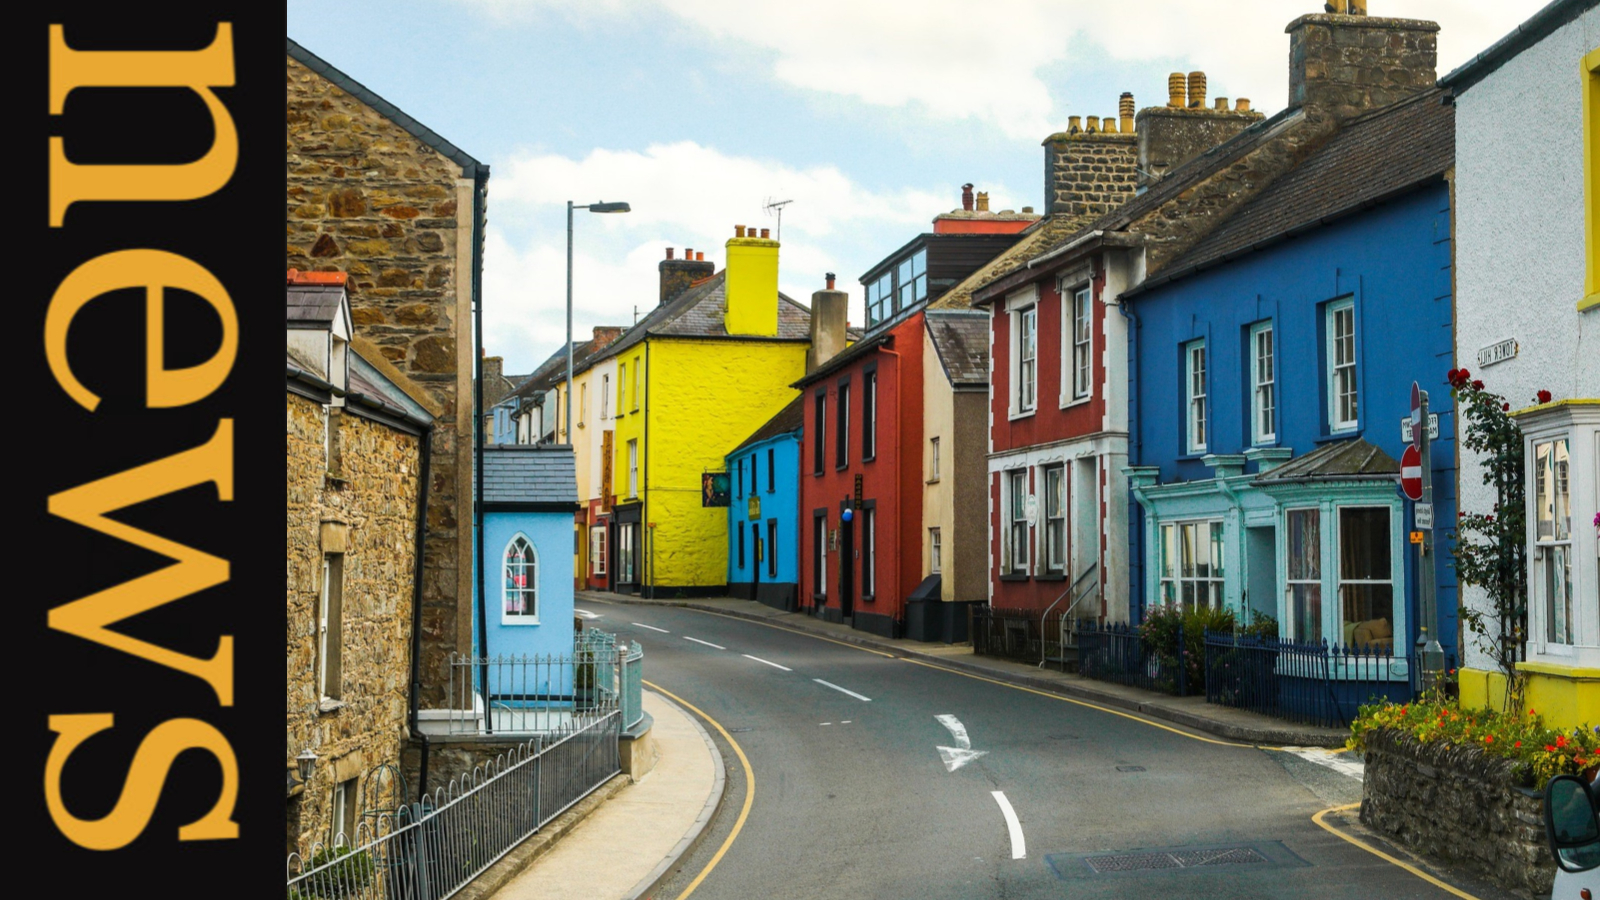 NEWS: Top 3 Postcodes for Buy-To-Let in Wales